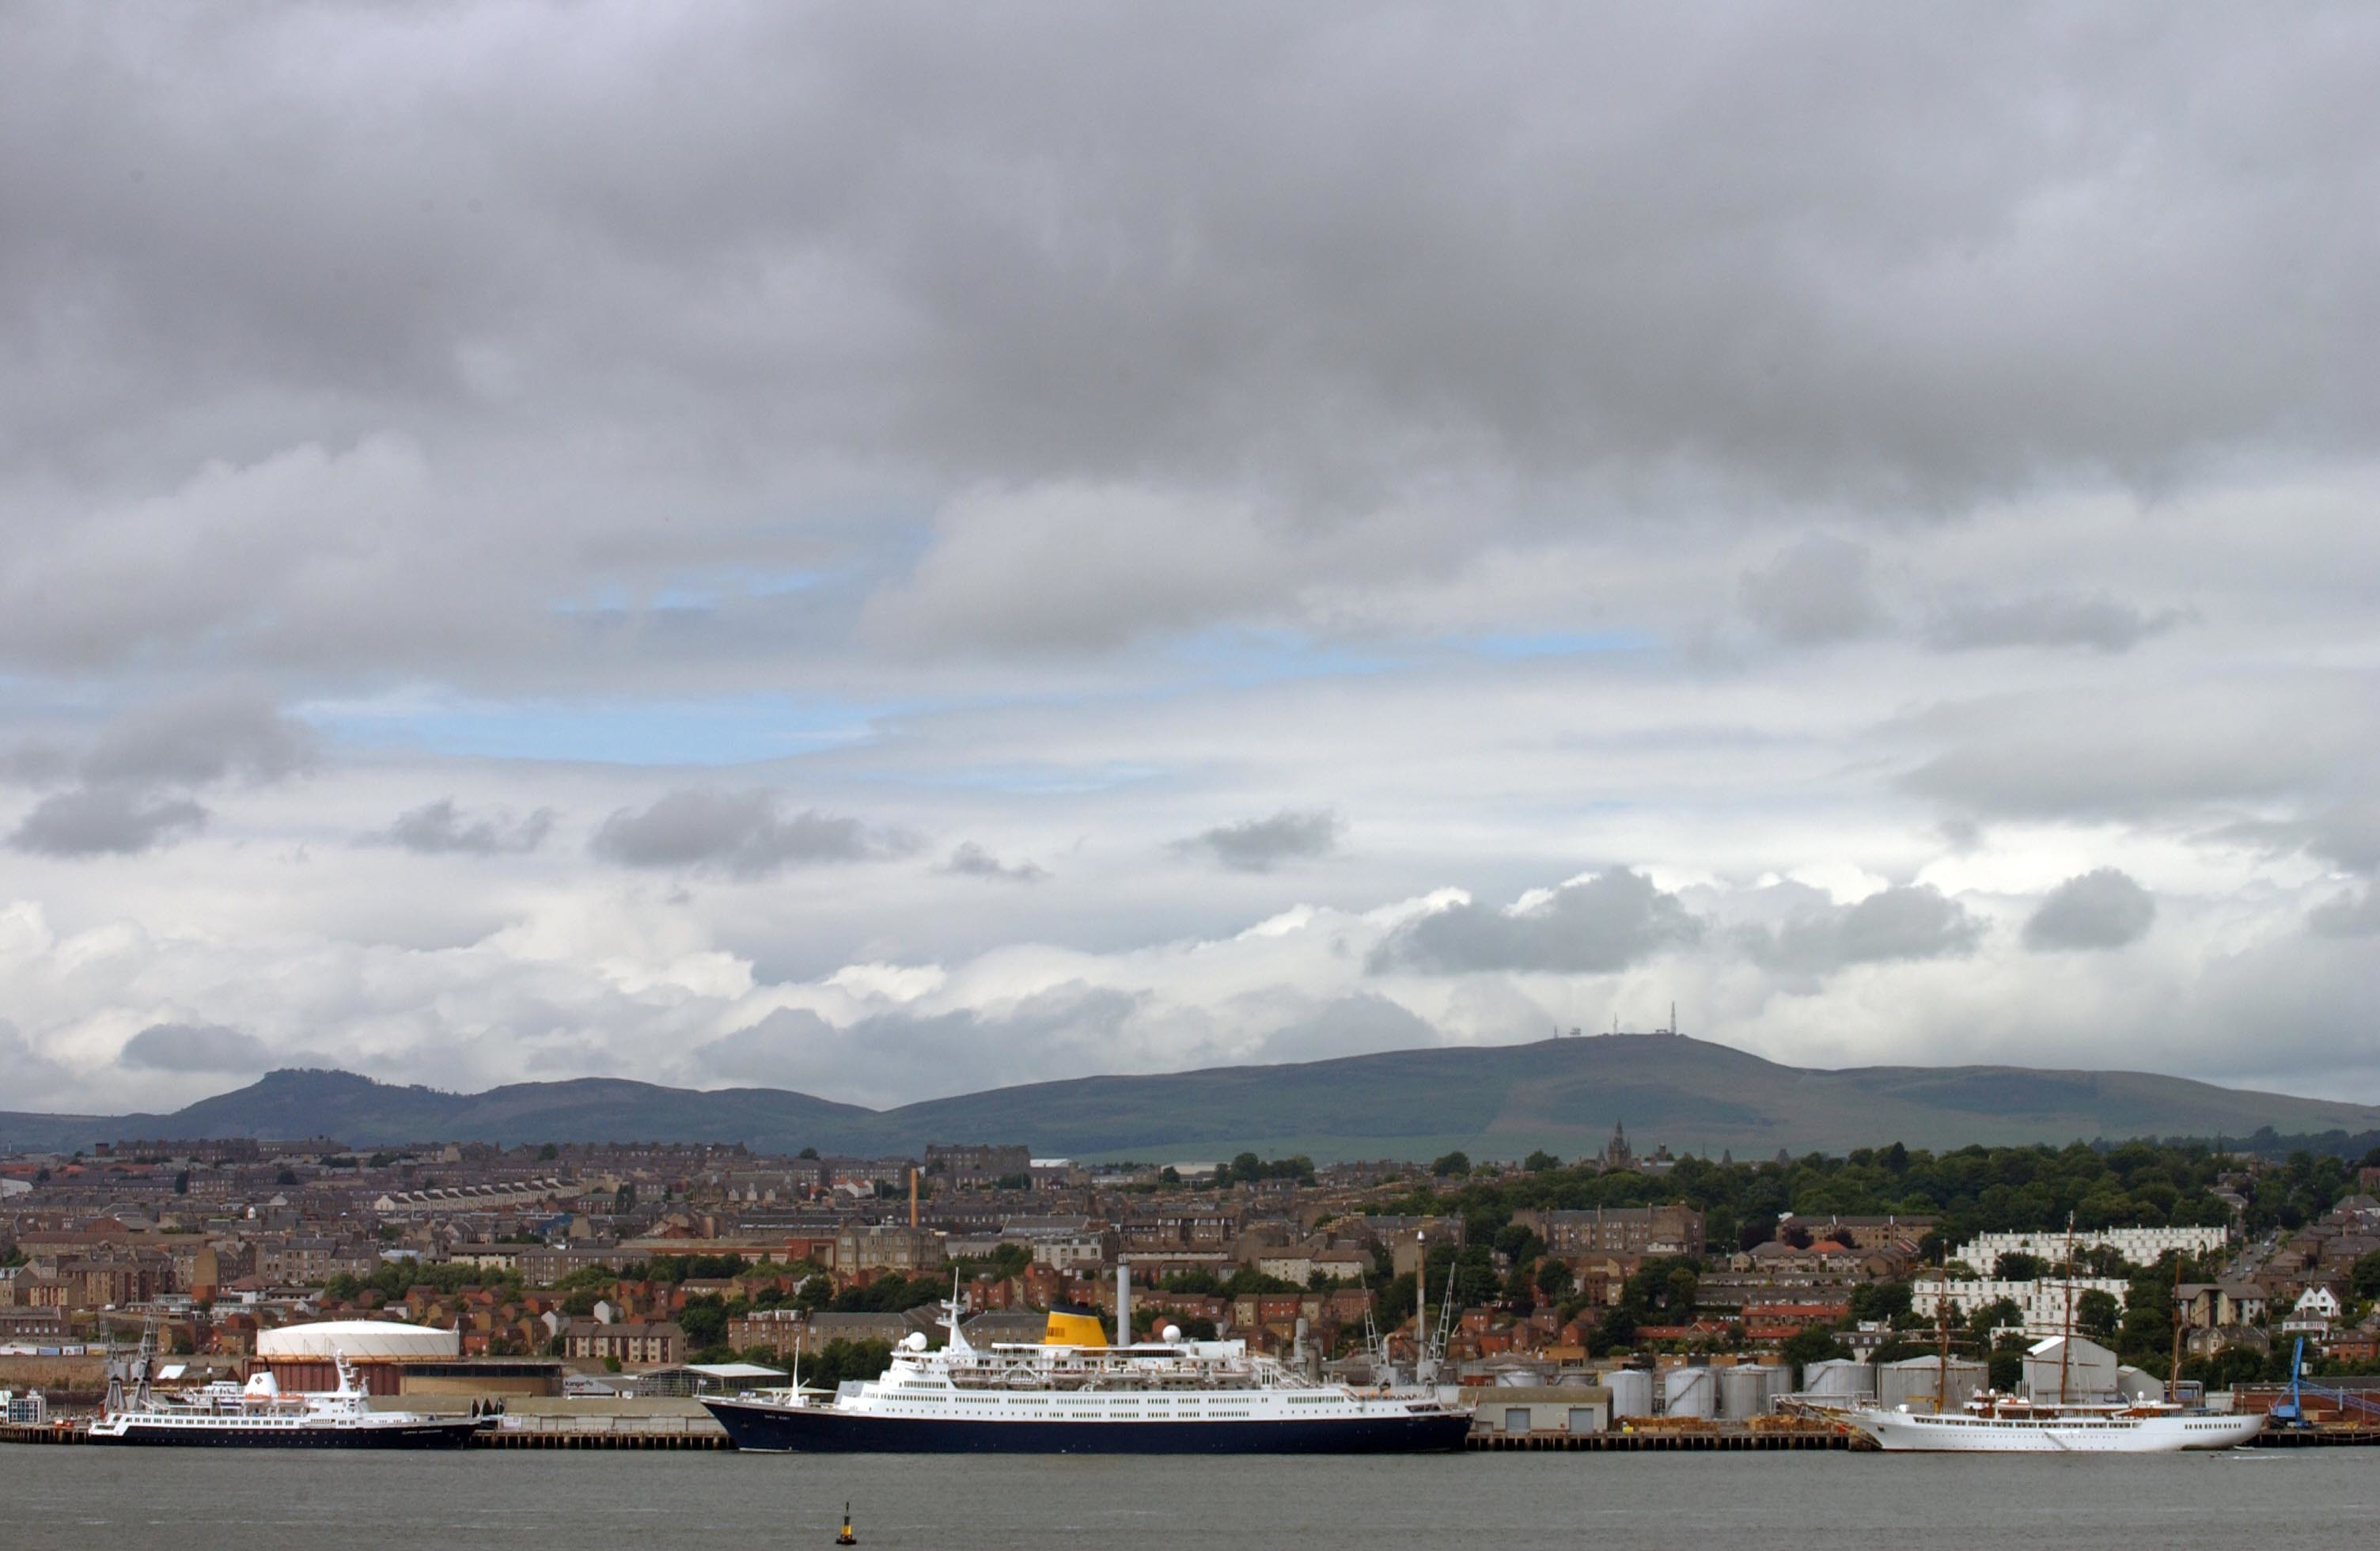 More than 525,000 passengers on 644 vessels are expected to arrive in Scotland this year (Alan Richardson)